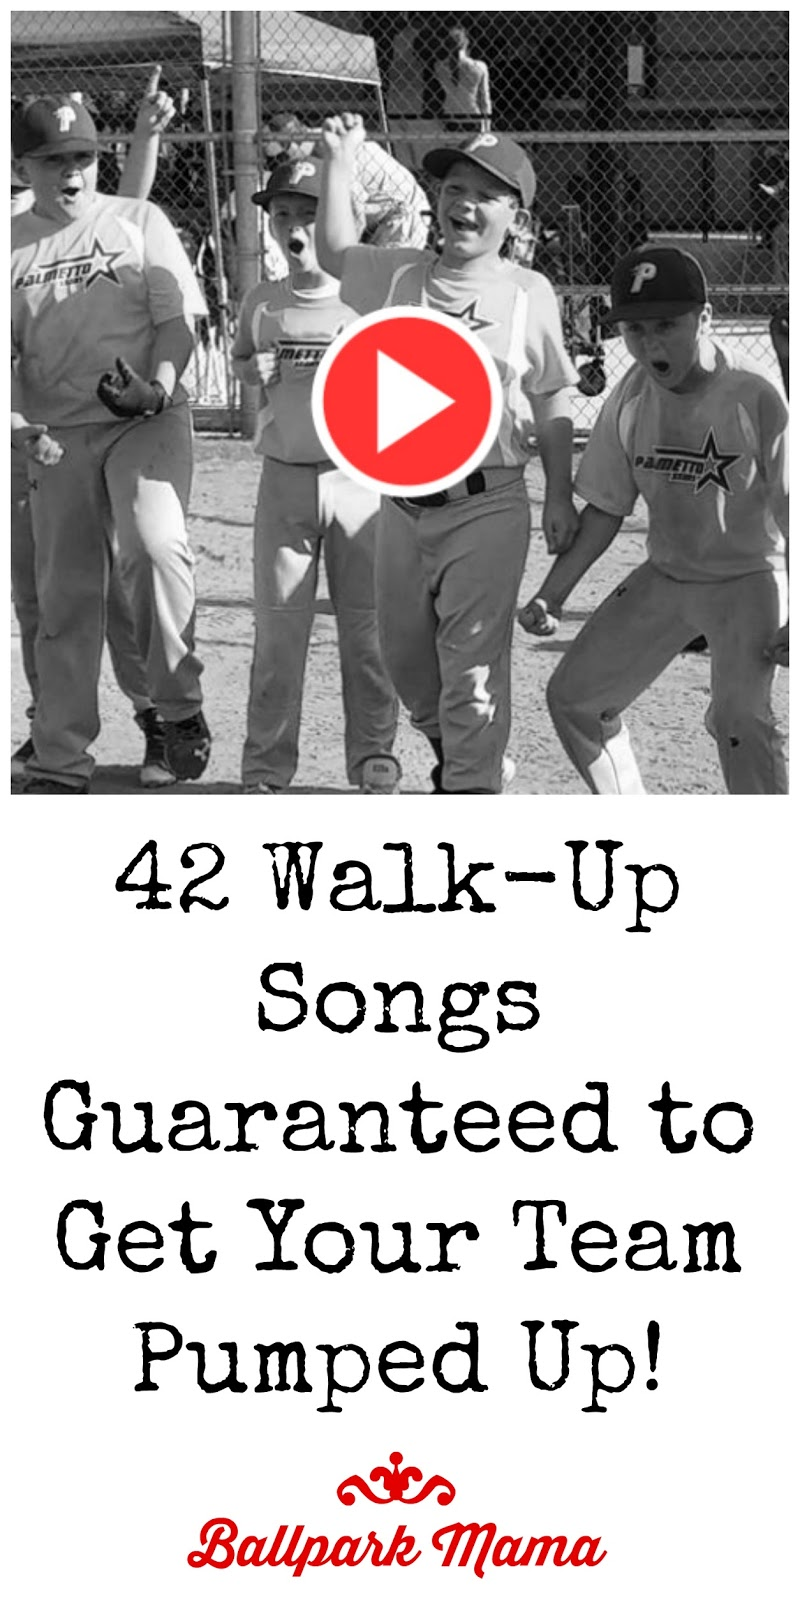 Ballpark Mama: 42 Walk-Up Songs Guaranteed to Get Your Team Pumped Up